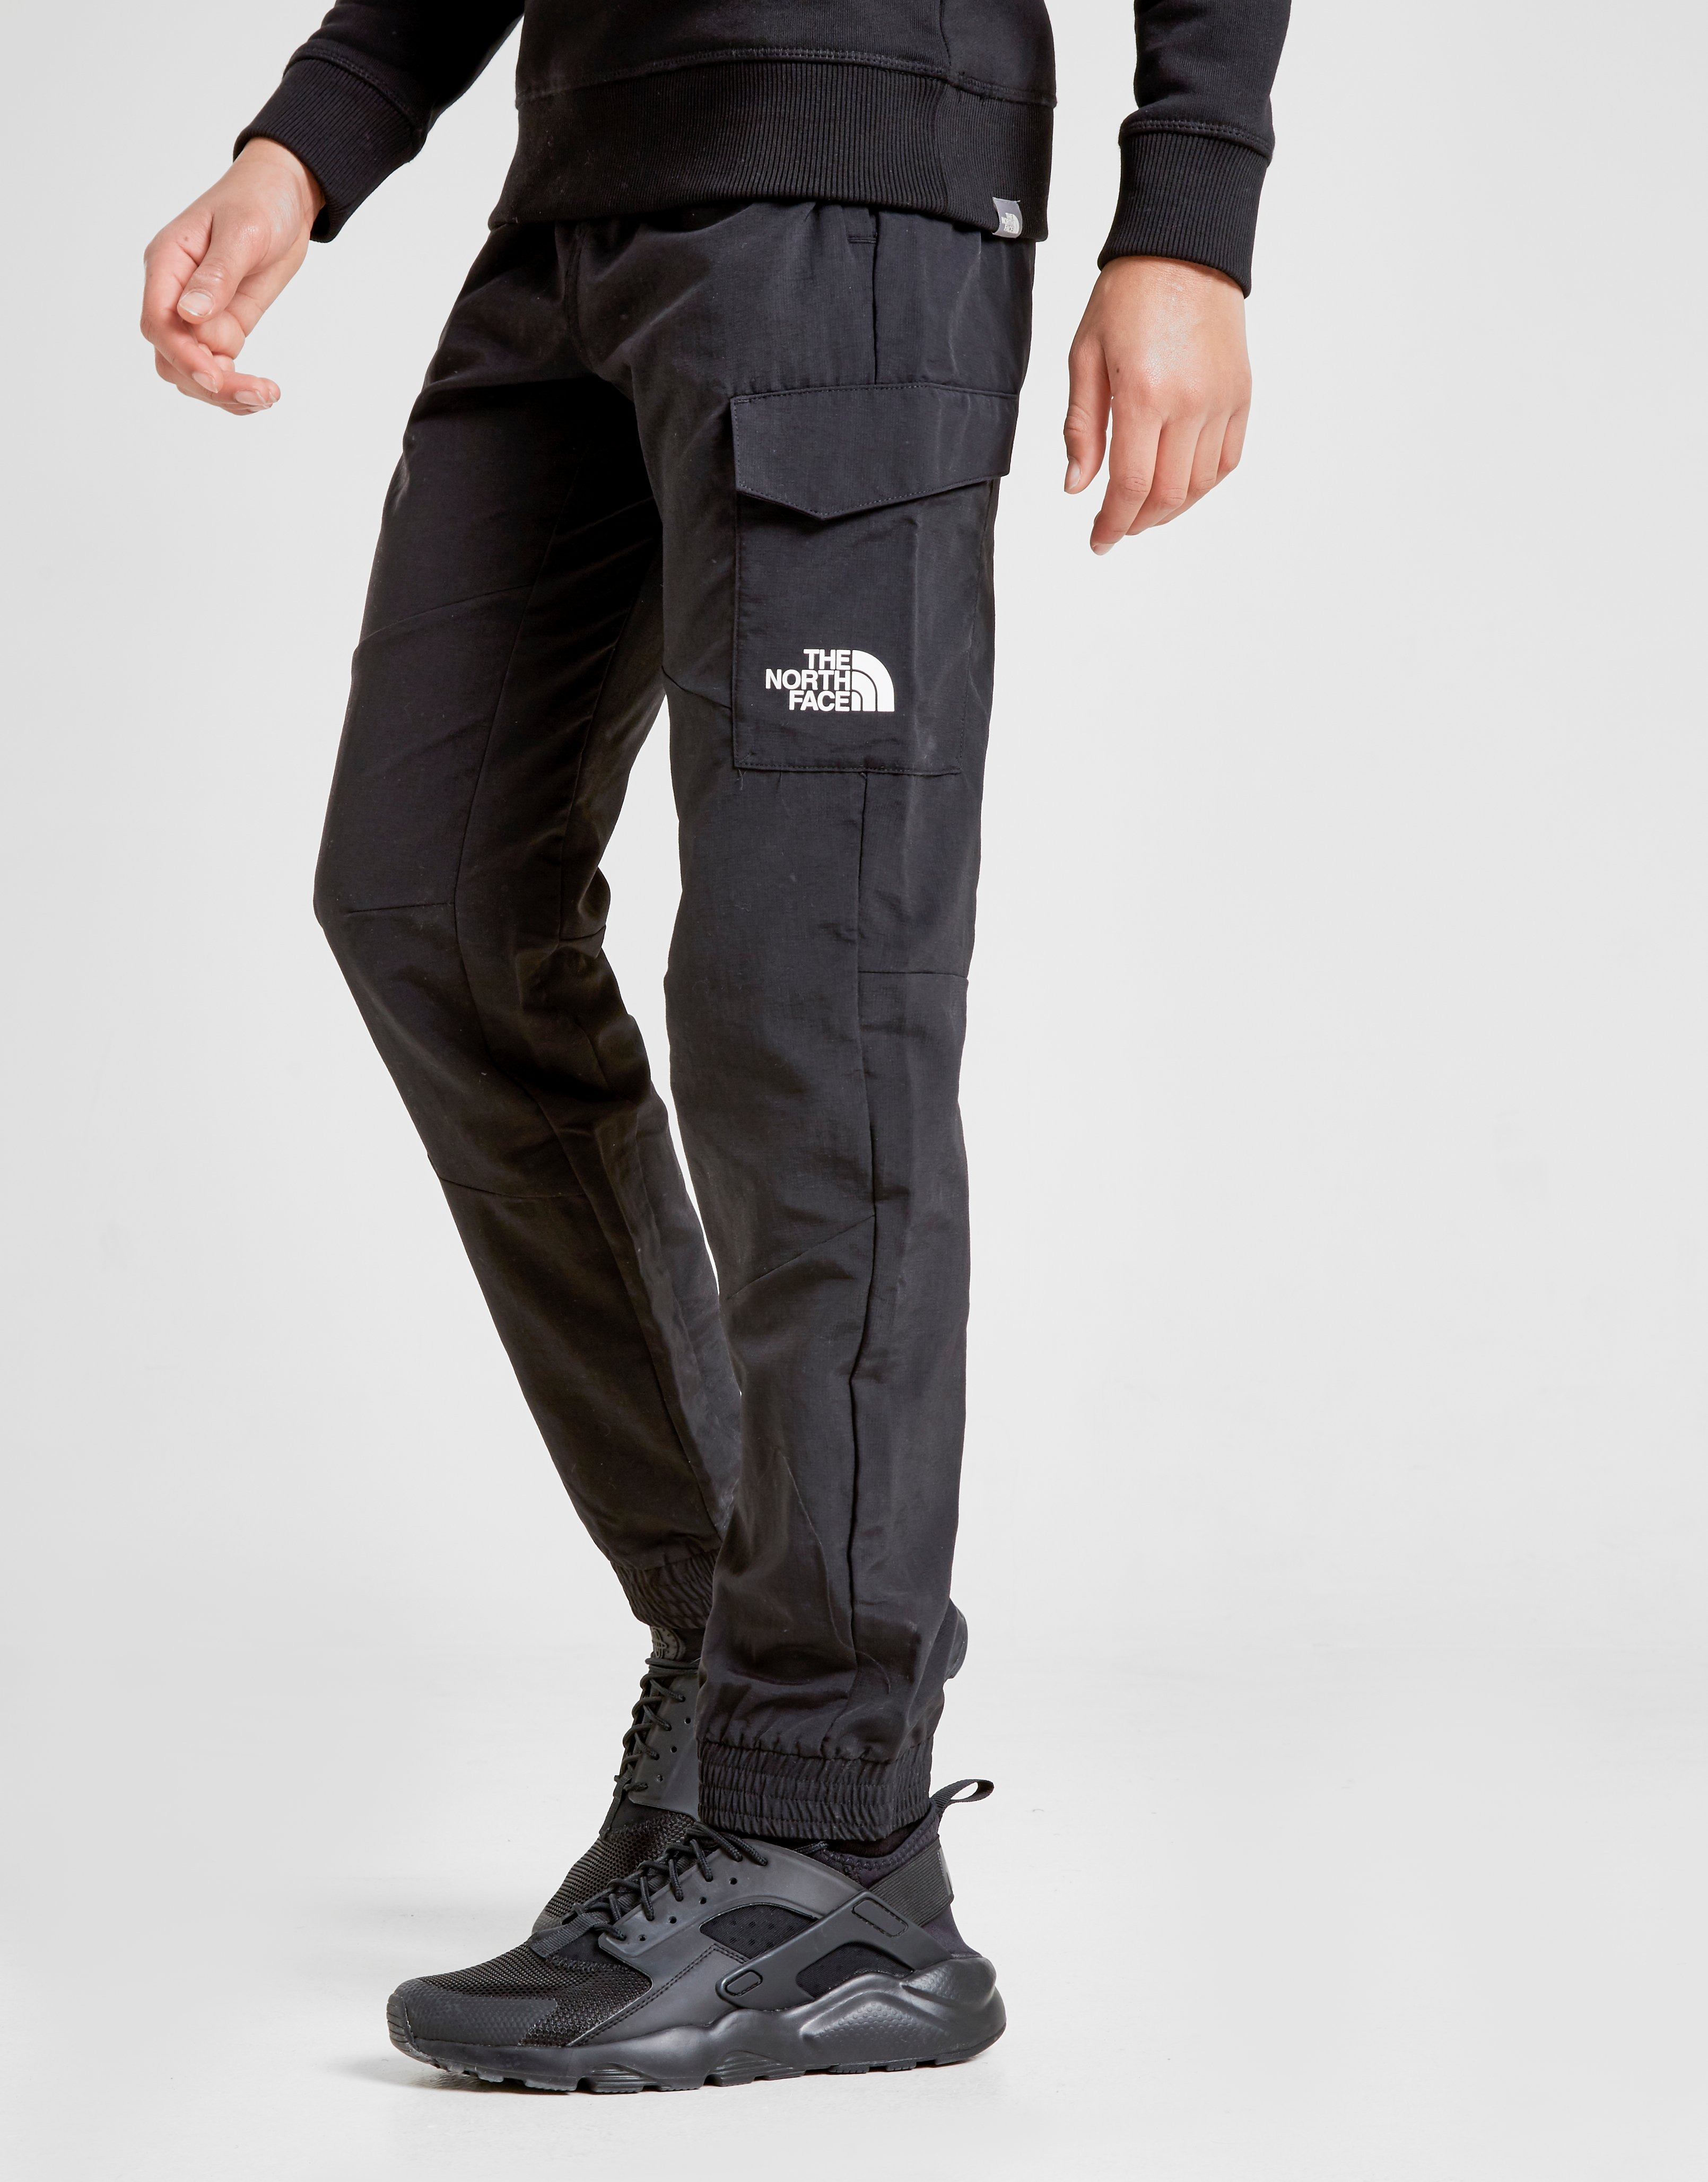 The North Face Woven Cargo Bukser Junior | JD Sports